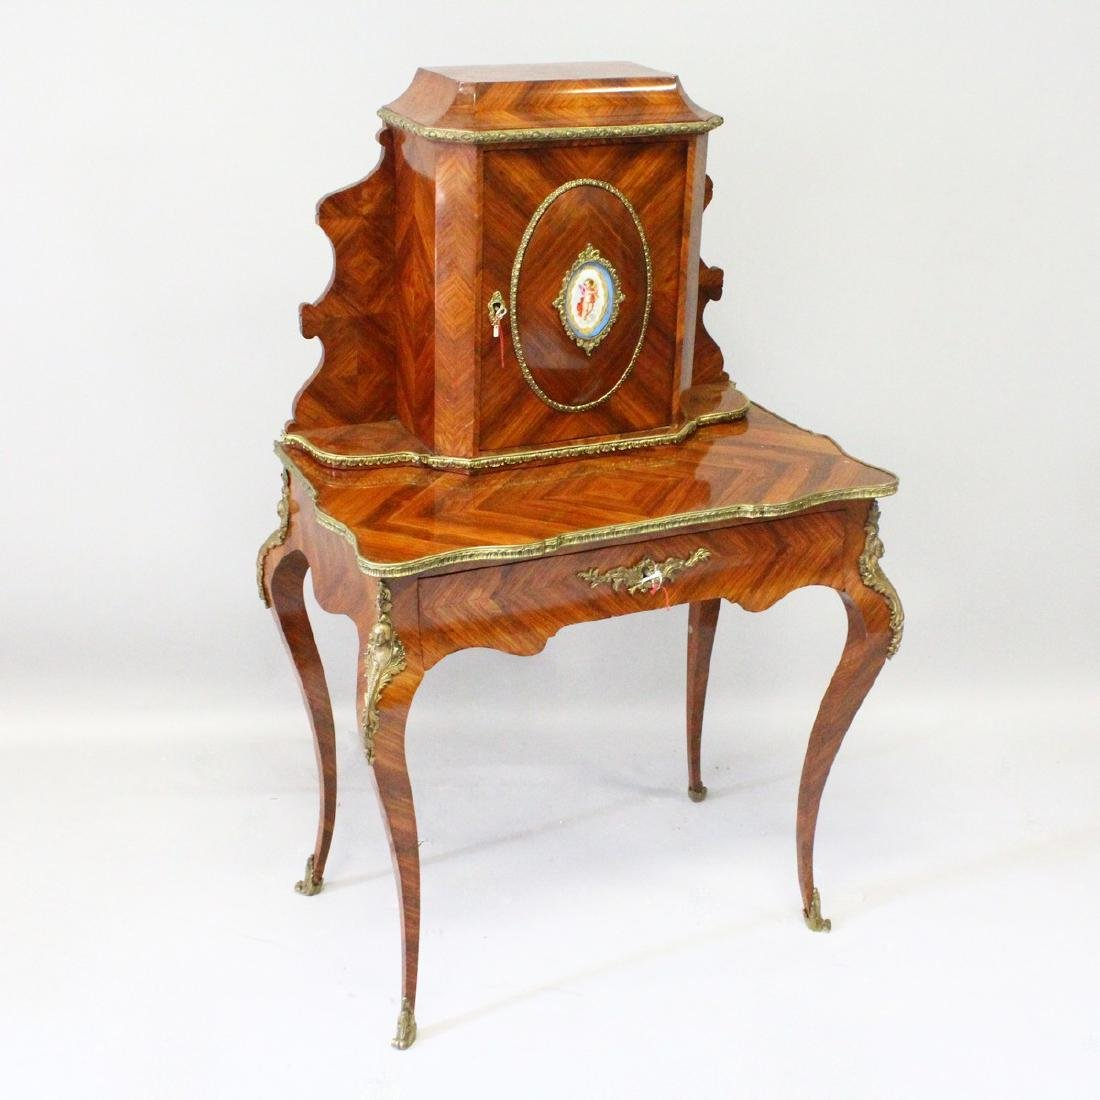 A GOOD 19TH CENTURY FRENCH KINGWOOD WRITING DESK, the